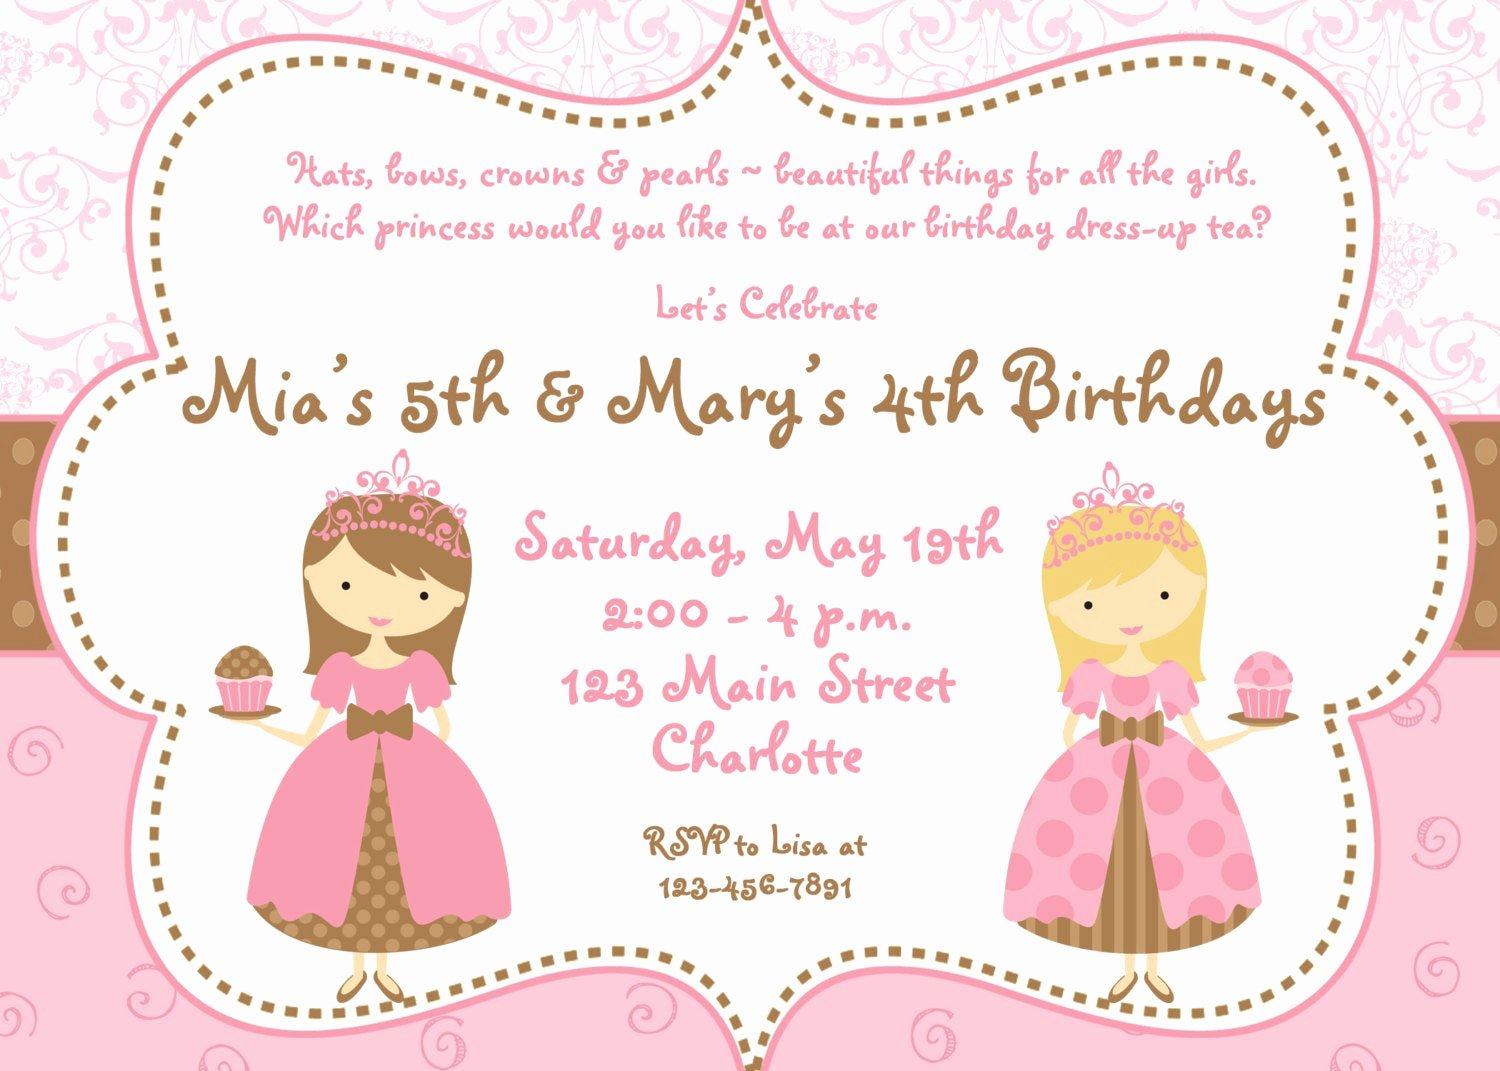 Princess Tea Party Invitations New Tea Party Birthday Invitation Cupcake Party Princess Tea